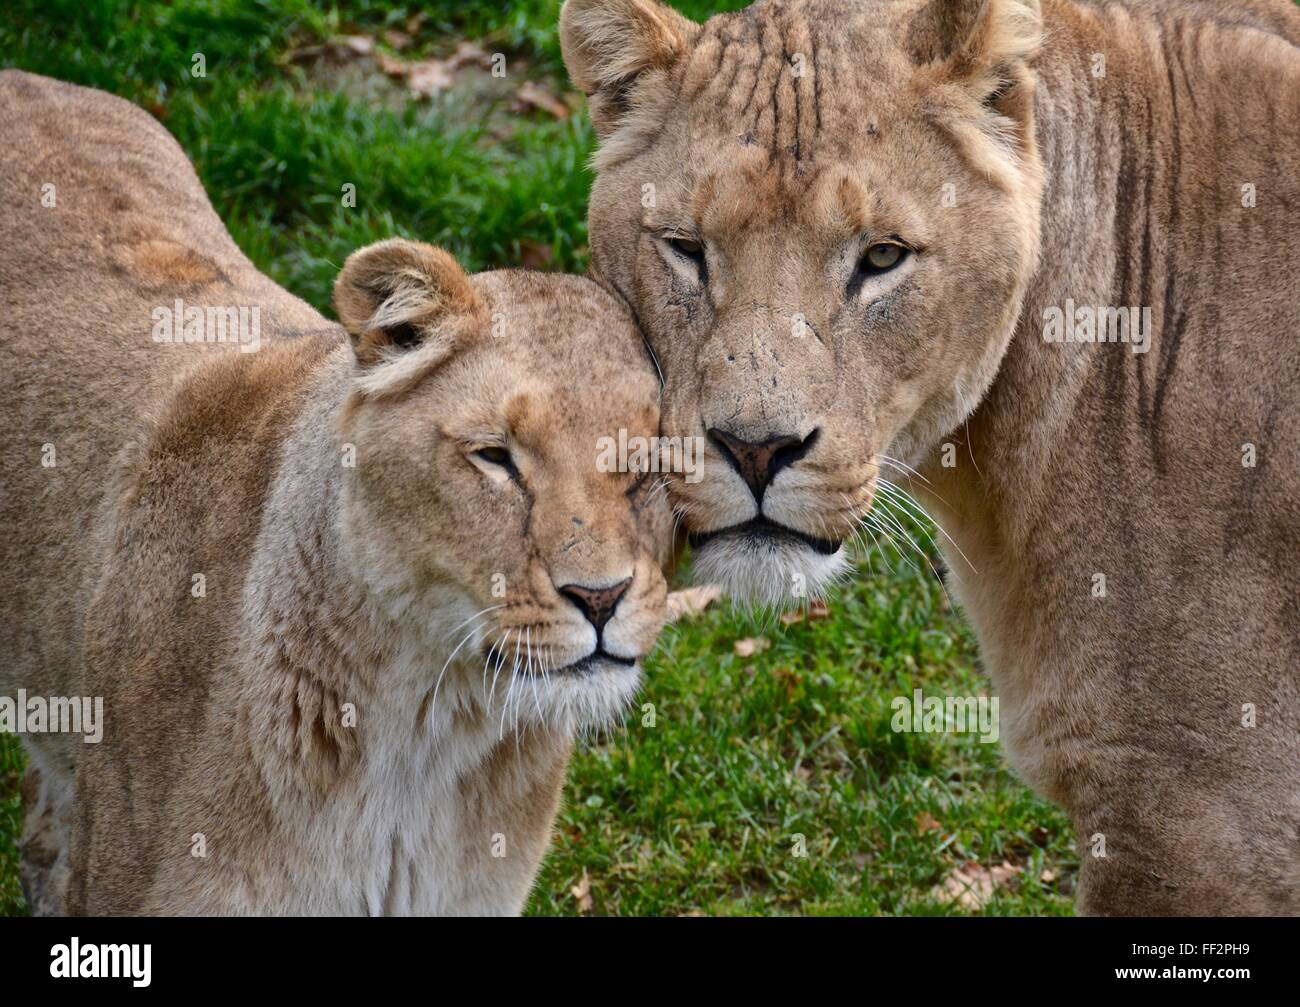 Lion's showing affection. - Stock Image